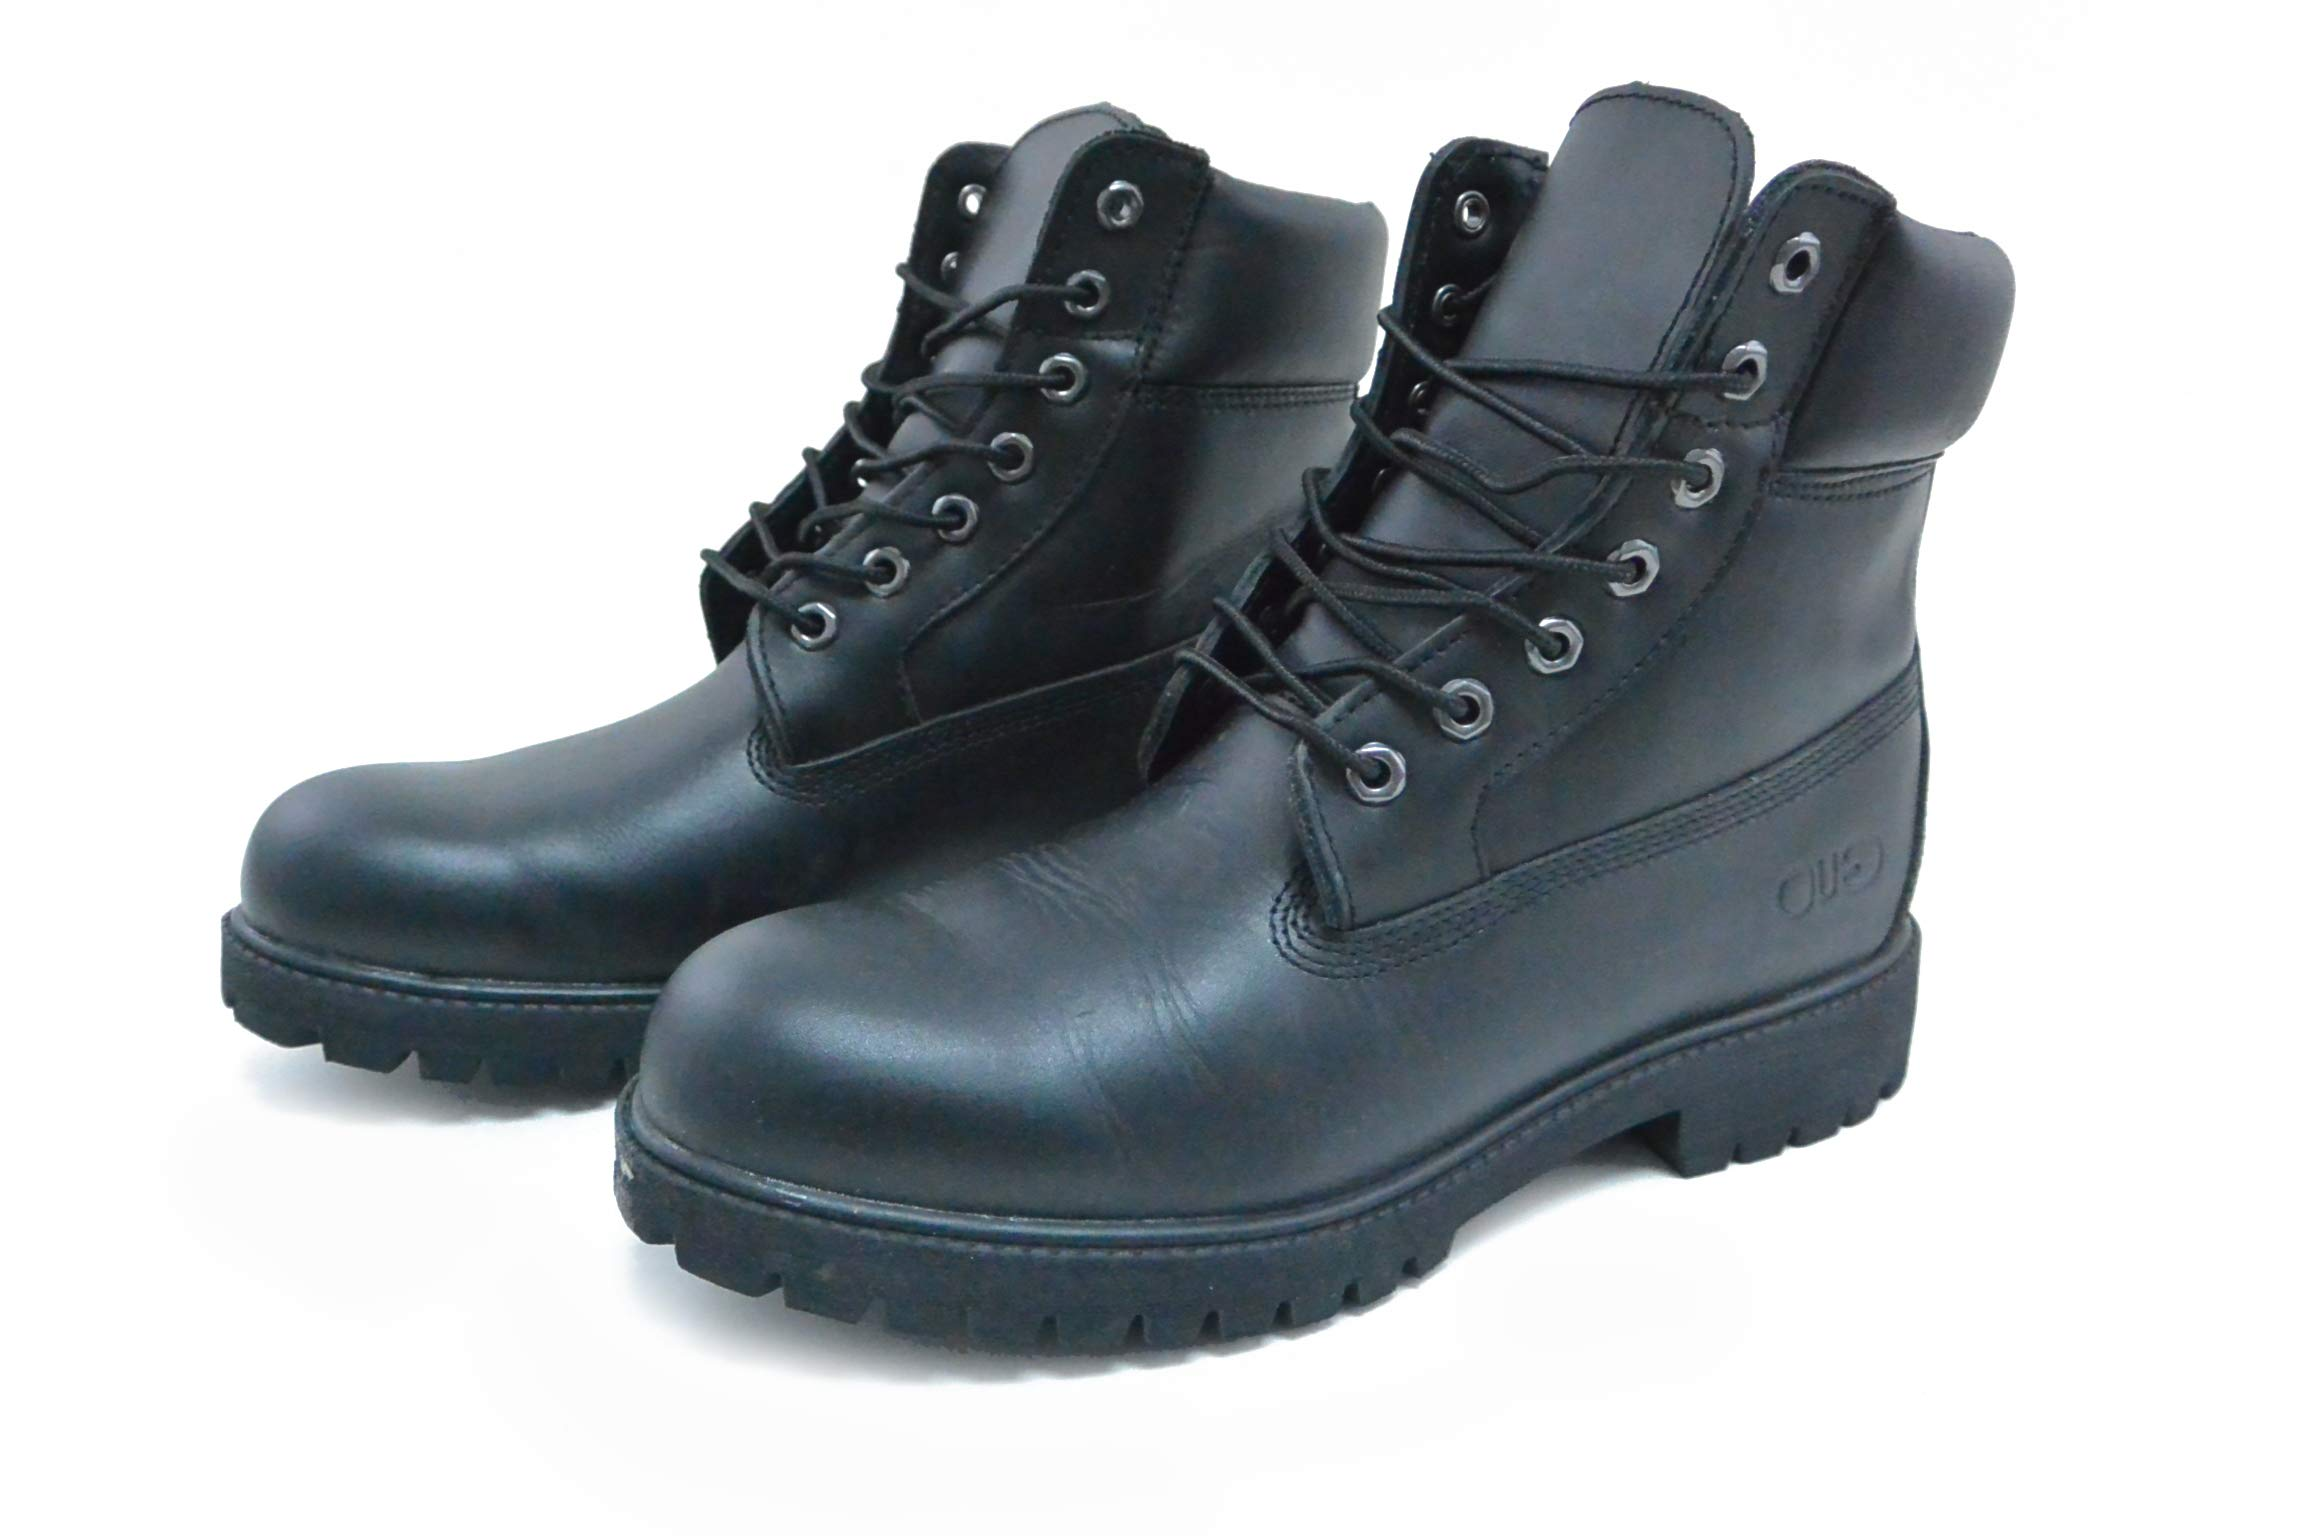 87399ebc258 Jacata Men's Work Boots Water Resistant Boots Heavy Duty Natural ...